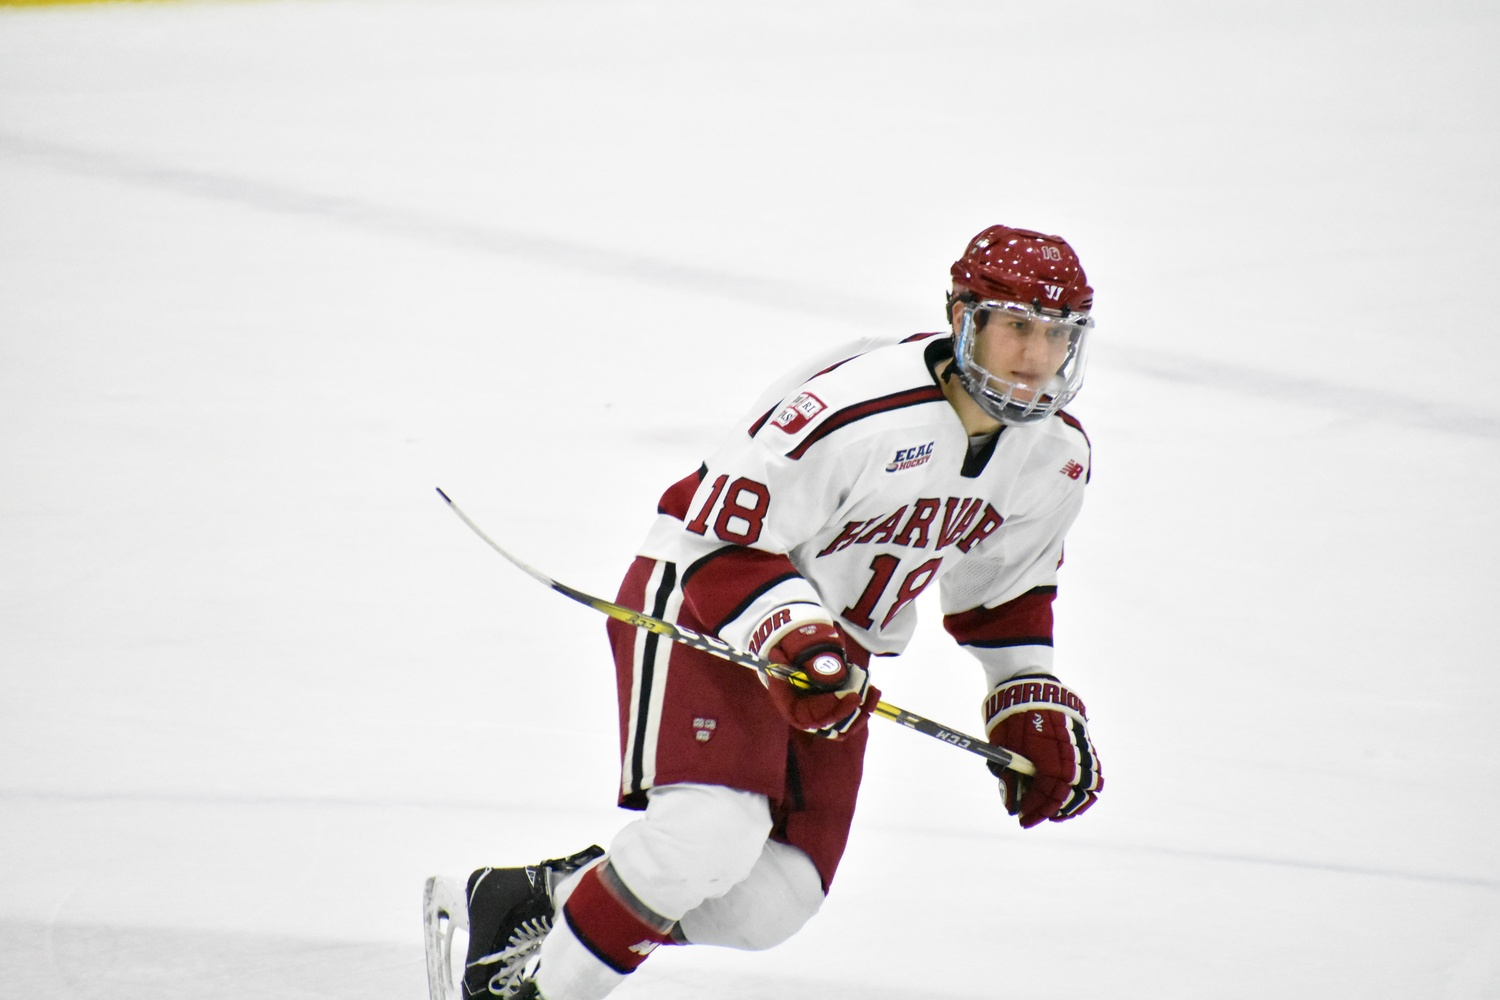 Adam Fox played up to his role of offensive-minded defenseman, assisting on goals from Zerter-Gossage and Donato while also tallying two of his own.